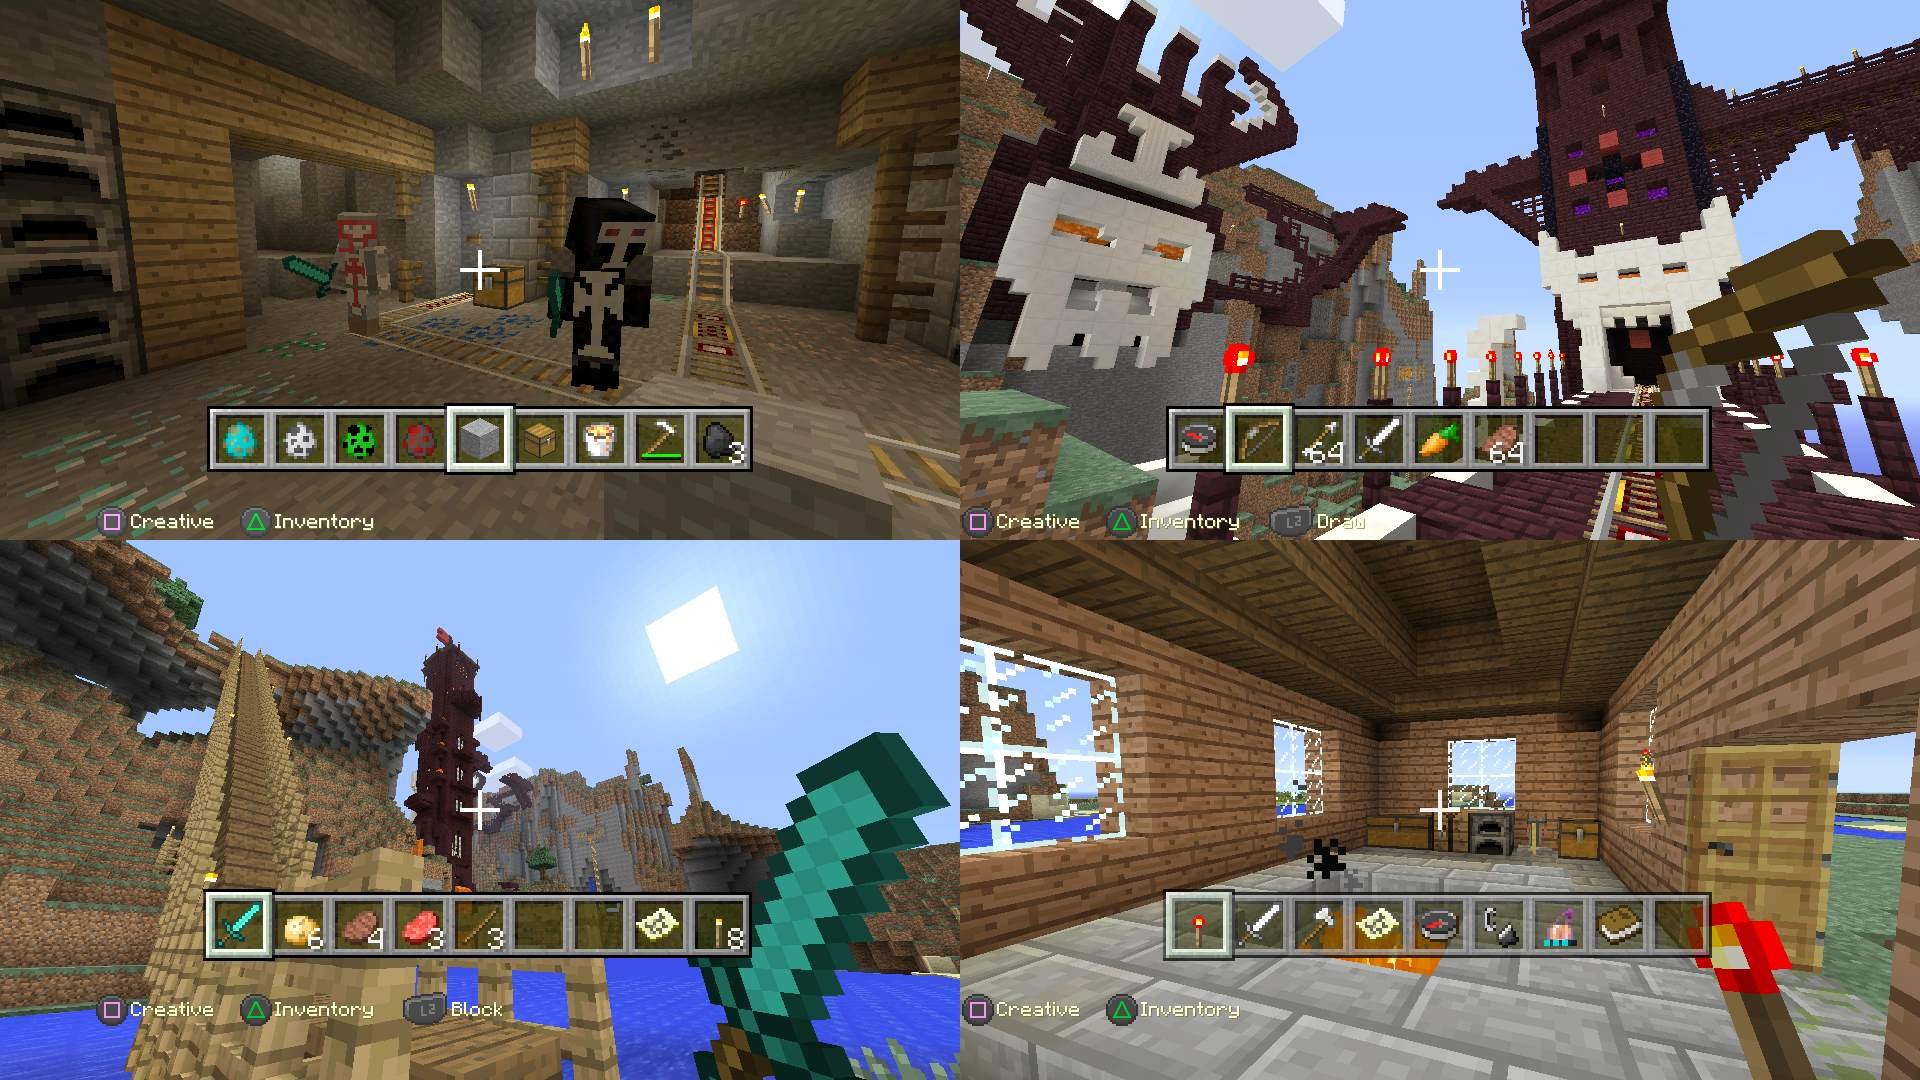 Minecraft PlayStation Edition On PS Official PlayStationStore US - Minecraft spiele fur ps3